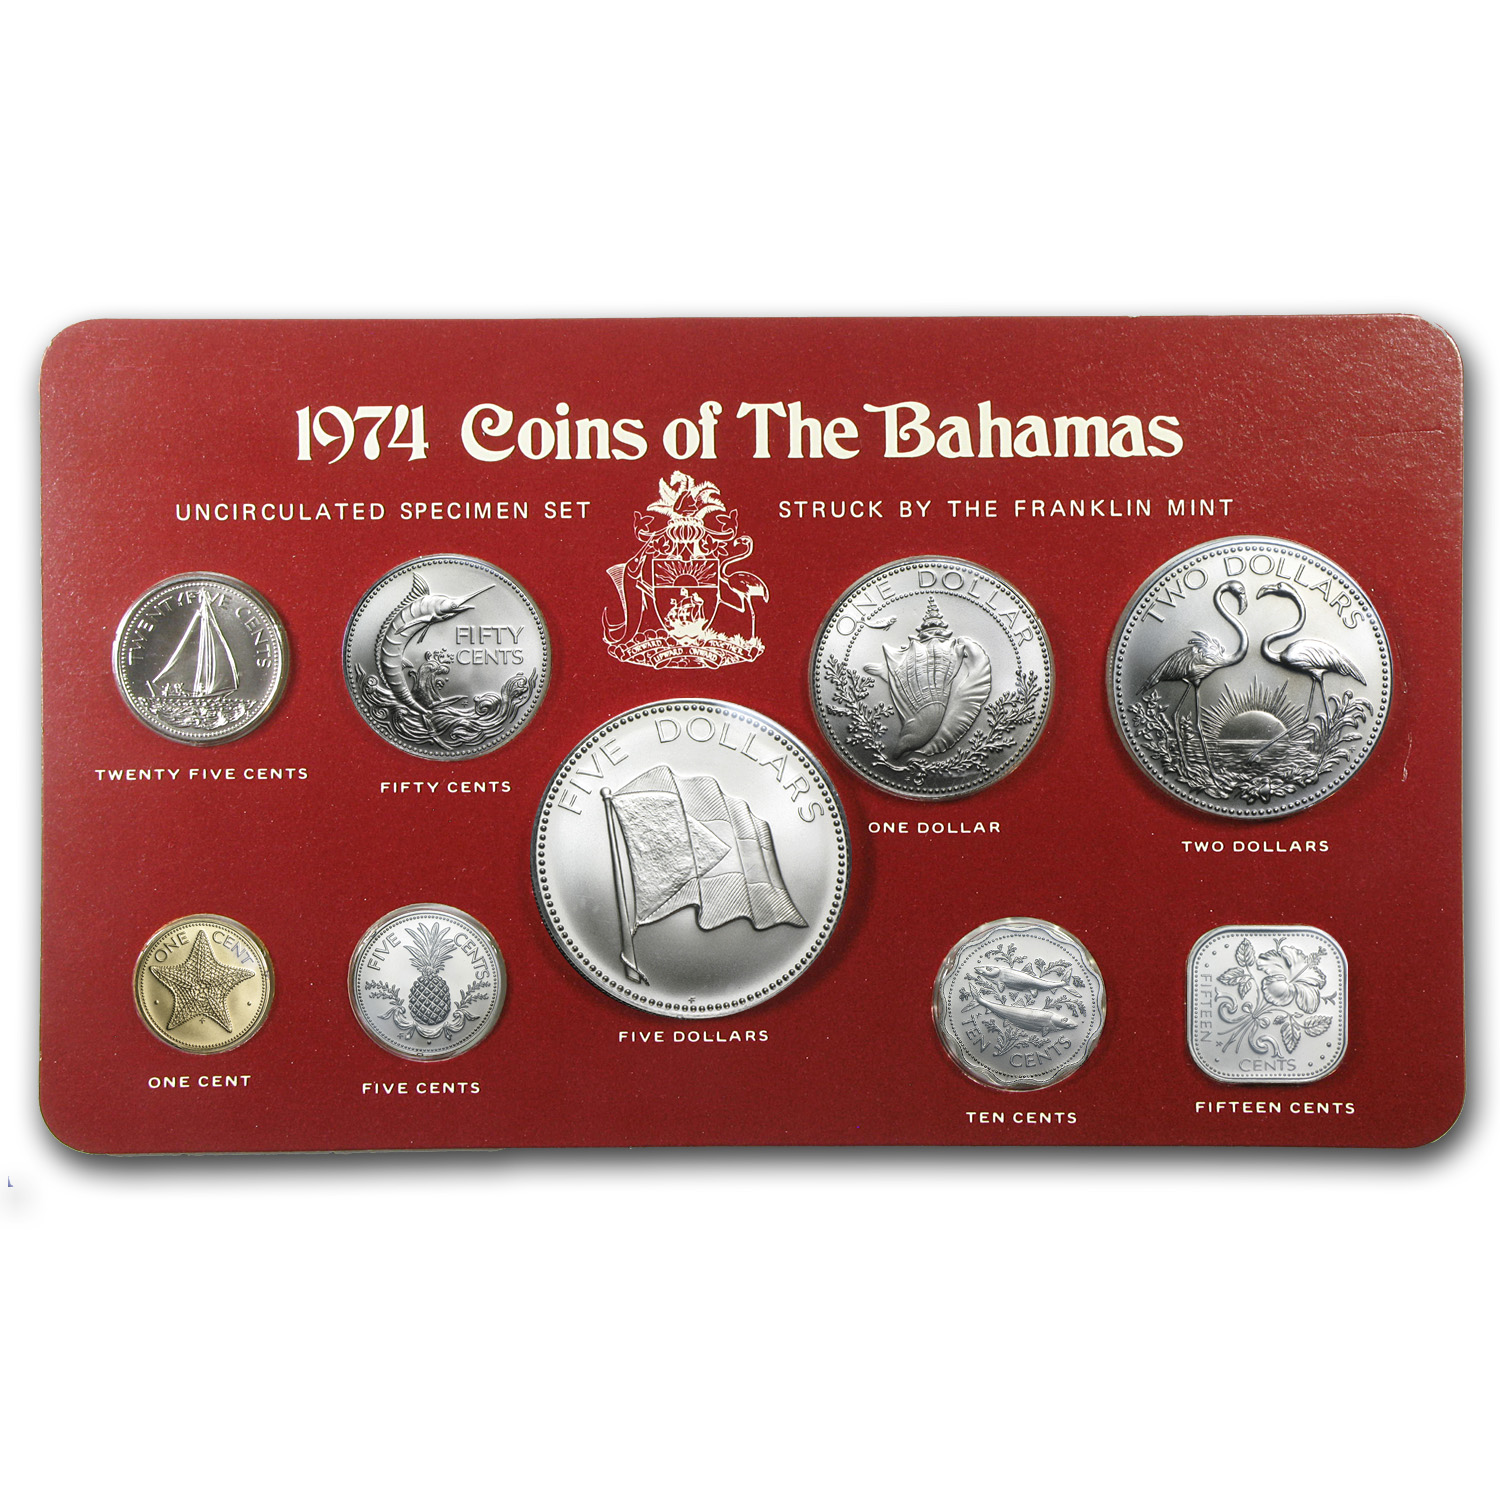 Bahamas 1974 9 Piece Uncirculated Specimen Set